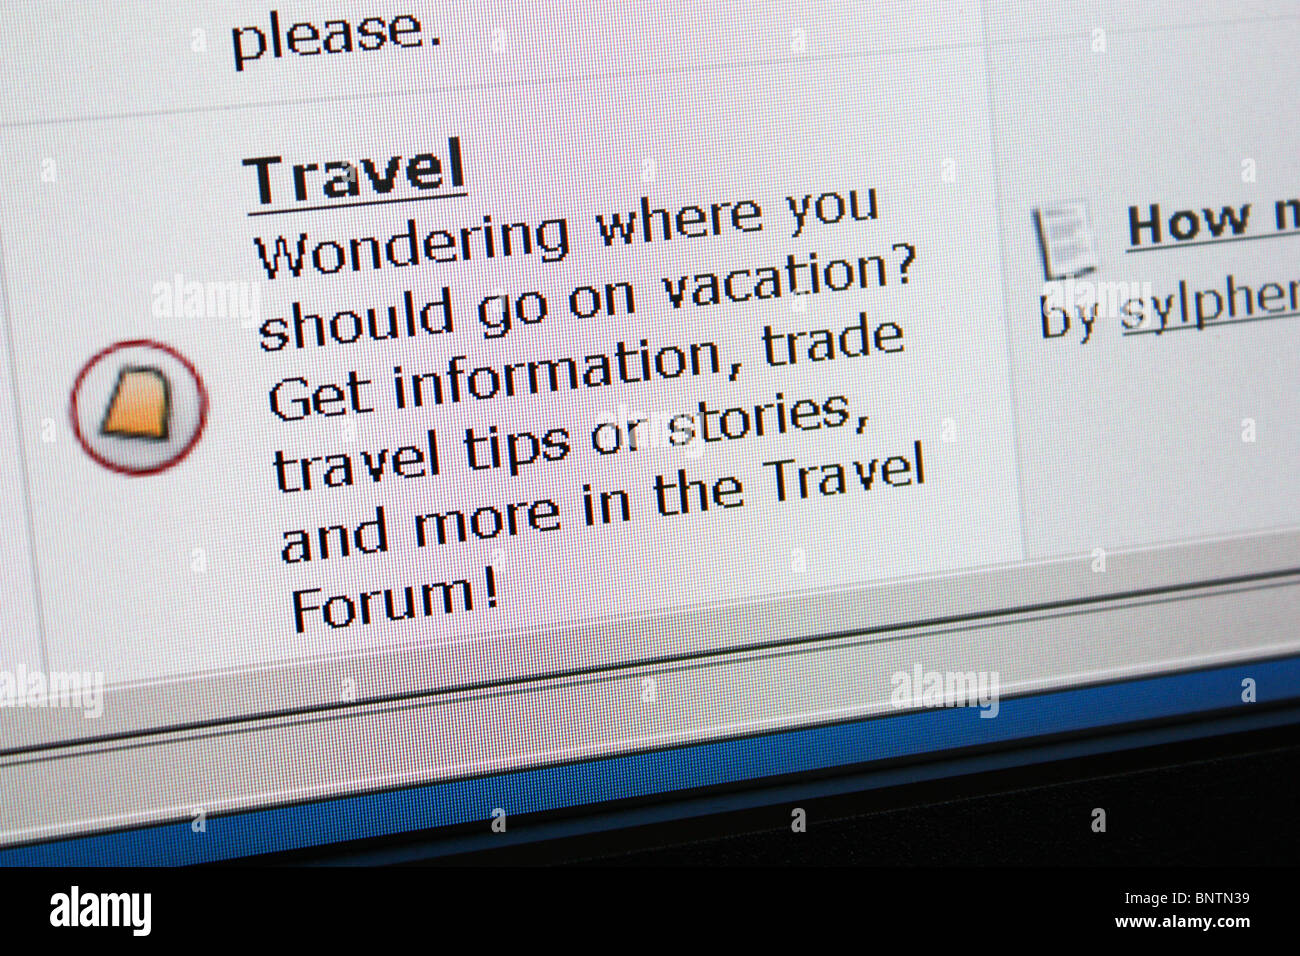 online discussion forum travel - Stock Image